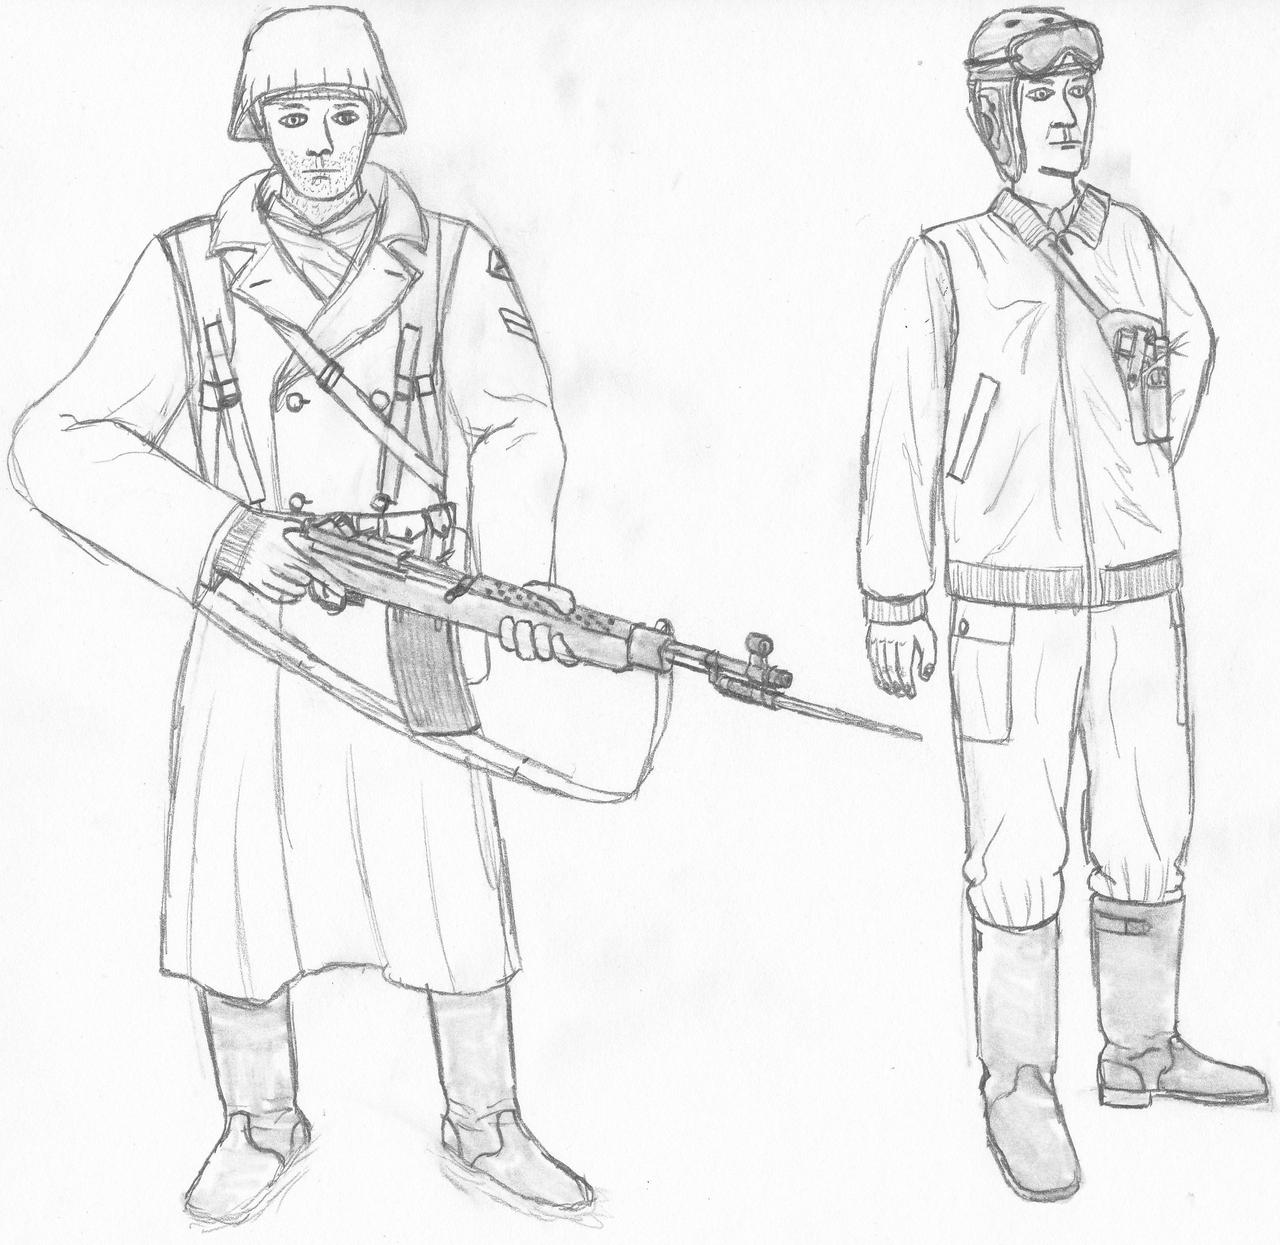 _tl_191__union_military_uniforms_pt__3_by_marlowski_ded2wgb-fullview.jpg